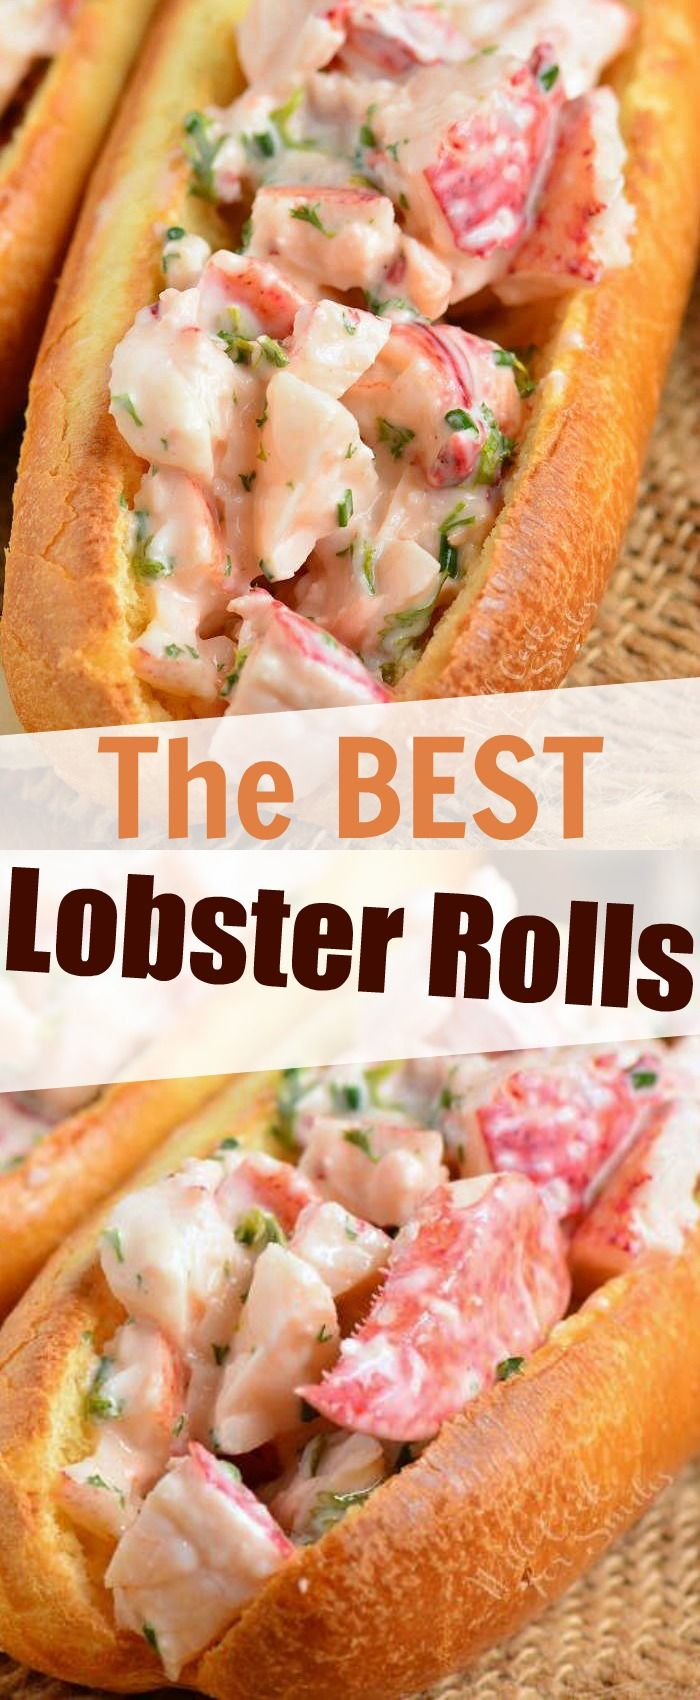 Lobster Rolls are made with succulent lobster meat salad falvored with lemon, mayonnaise and herbs and served on a warm, buttery bun. Learn hot to cook and pull apart a lobster. #lobster #rolls #sandwich #seafood #easydinner